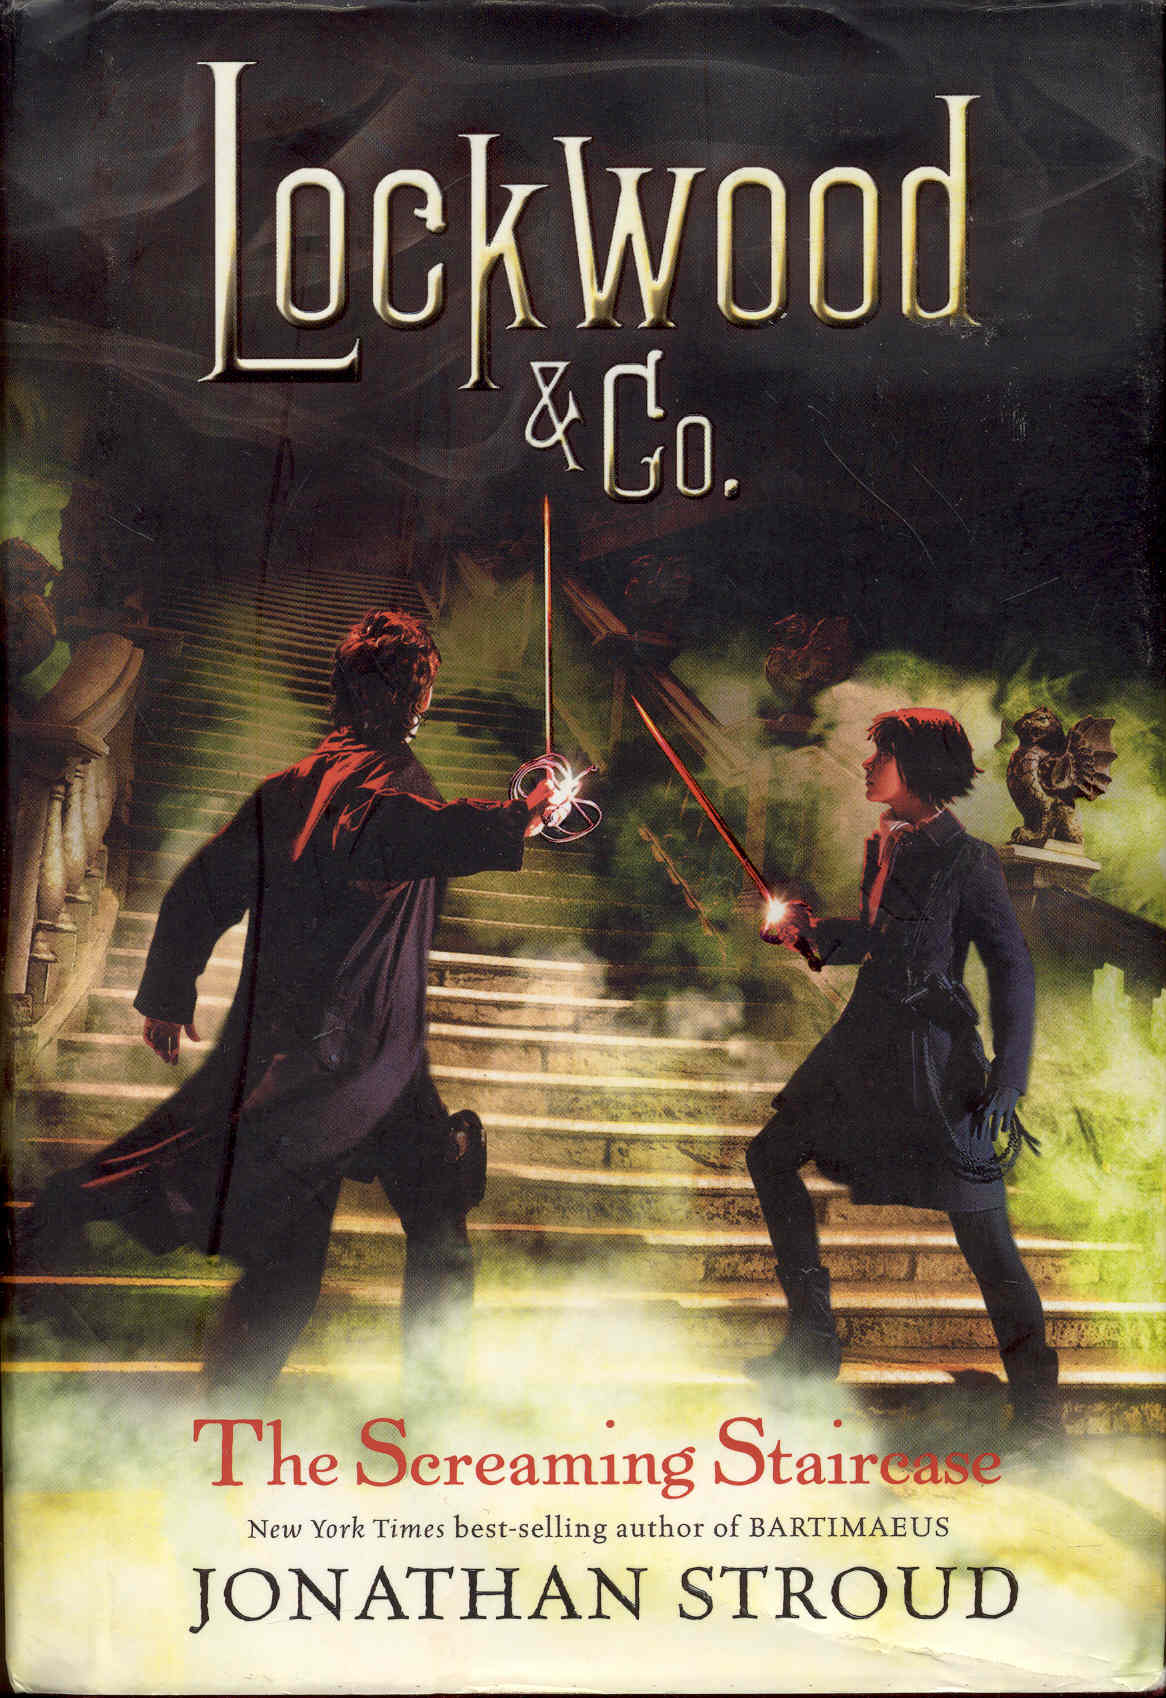 Image for The Screaming Staircase (Lockwood & Co., Book 1)